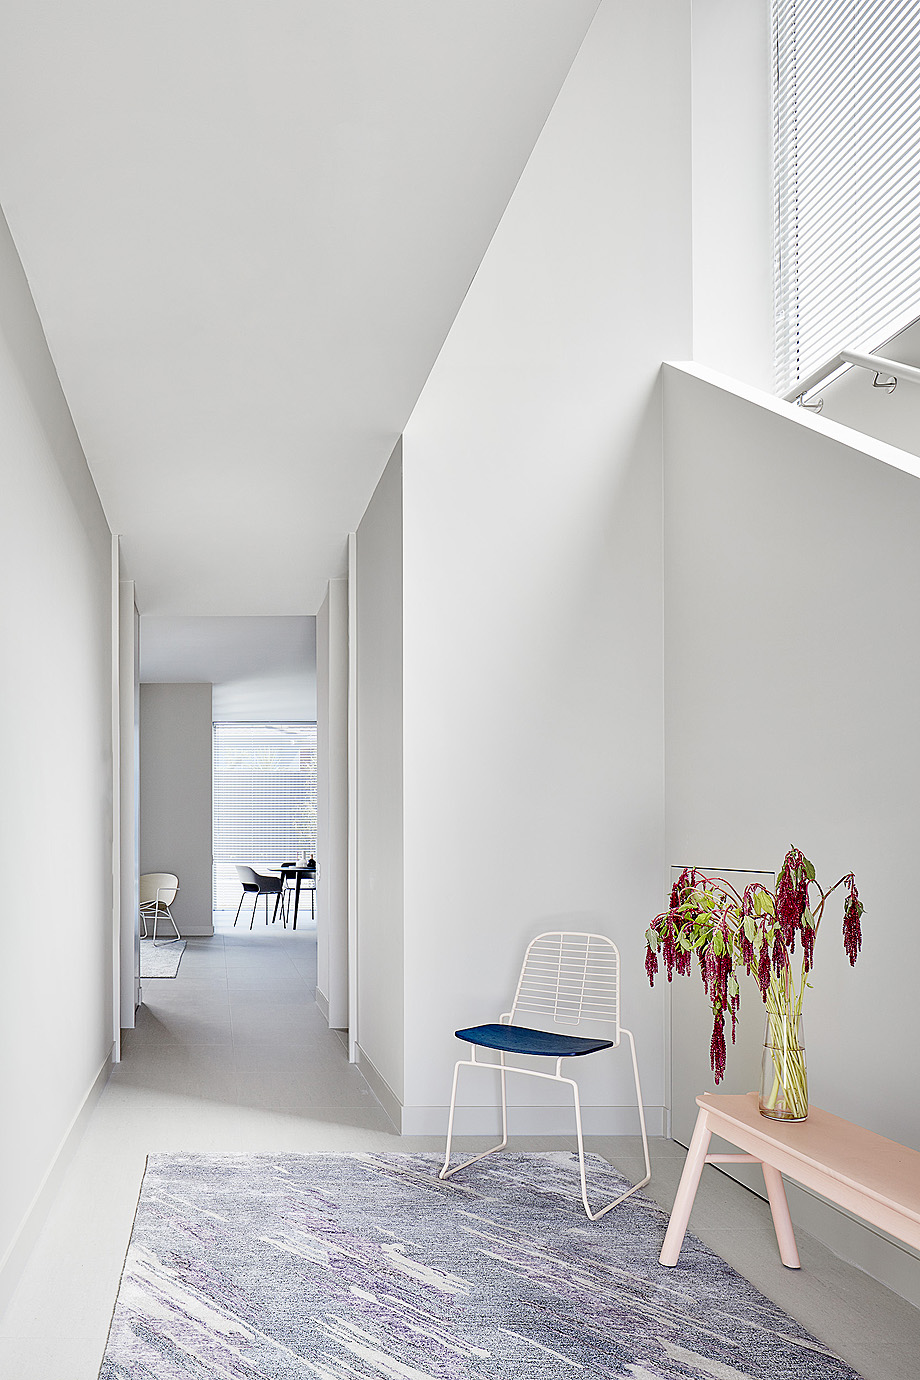 residencias jcr de davidov partners architects - foto jack lovel (8)